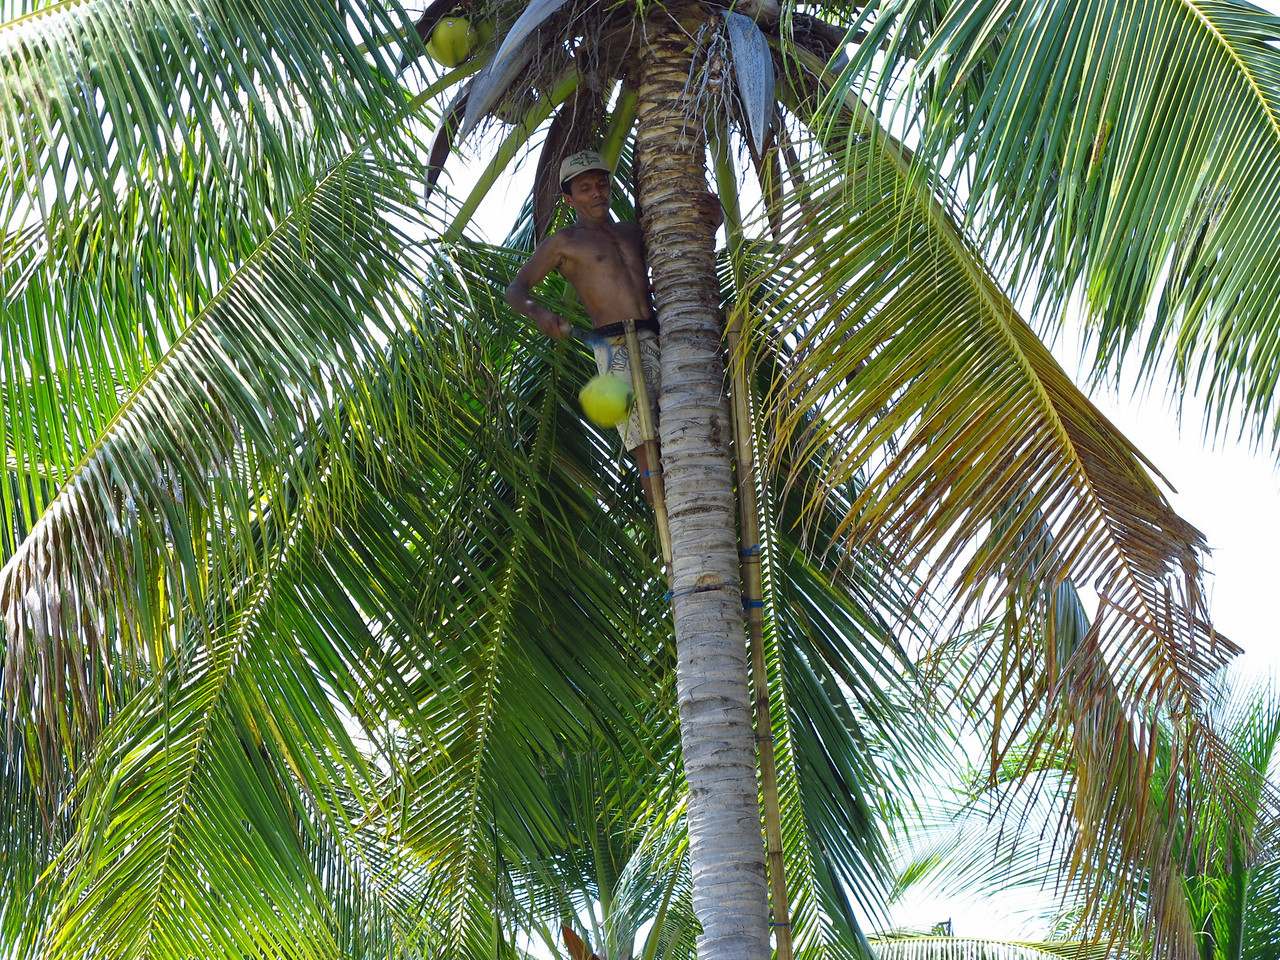 When you need a fresh coconut, someone is always around to get you one.